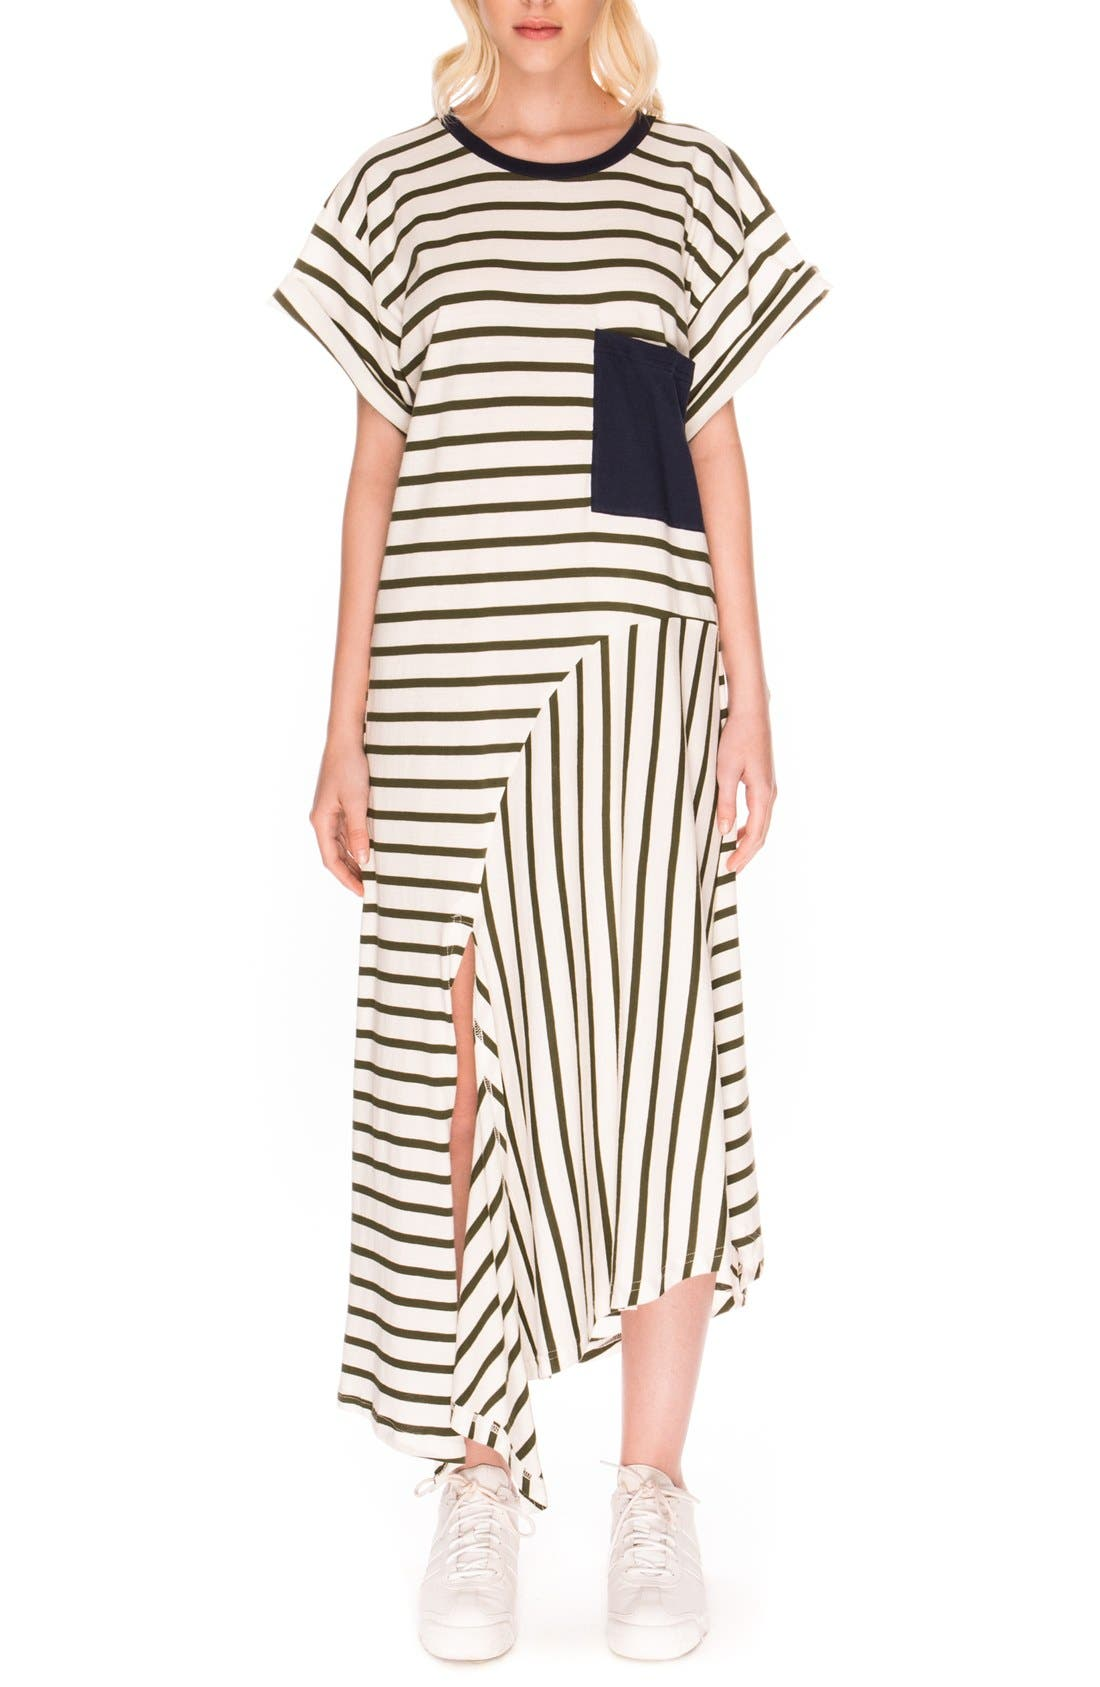 Main Image - The Fifth Label 'On Your Mark' Stripe T-Shirt Dress